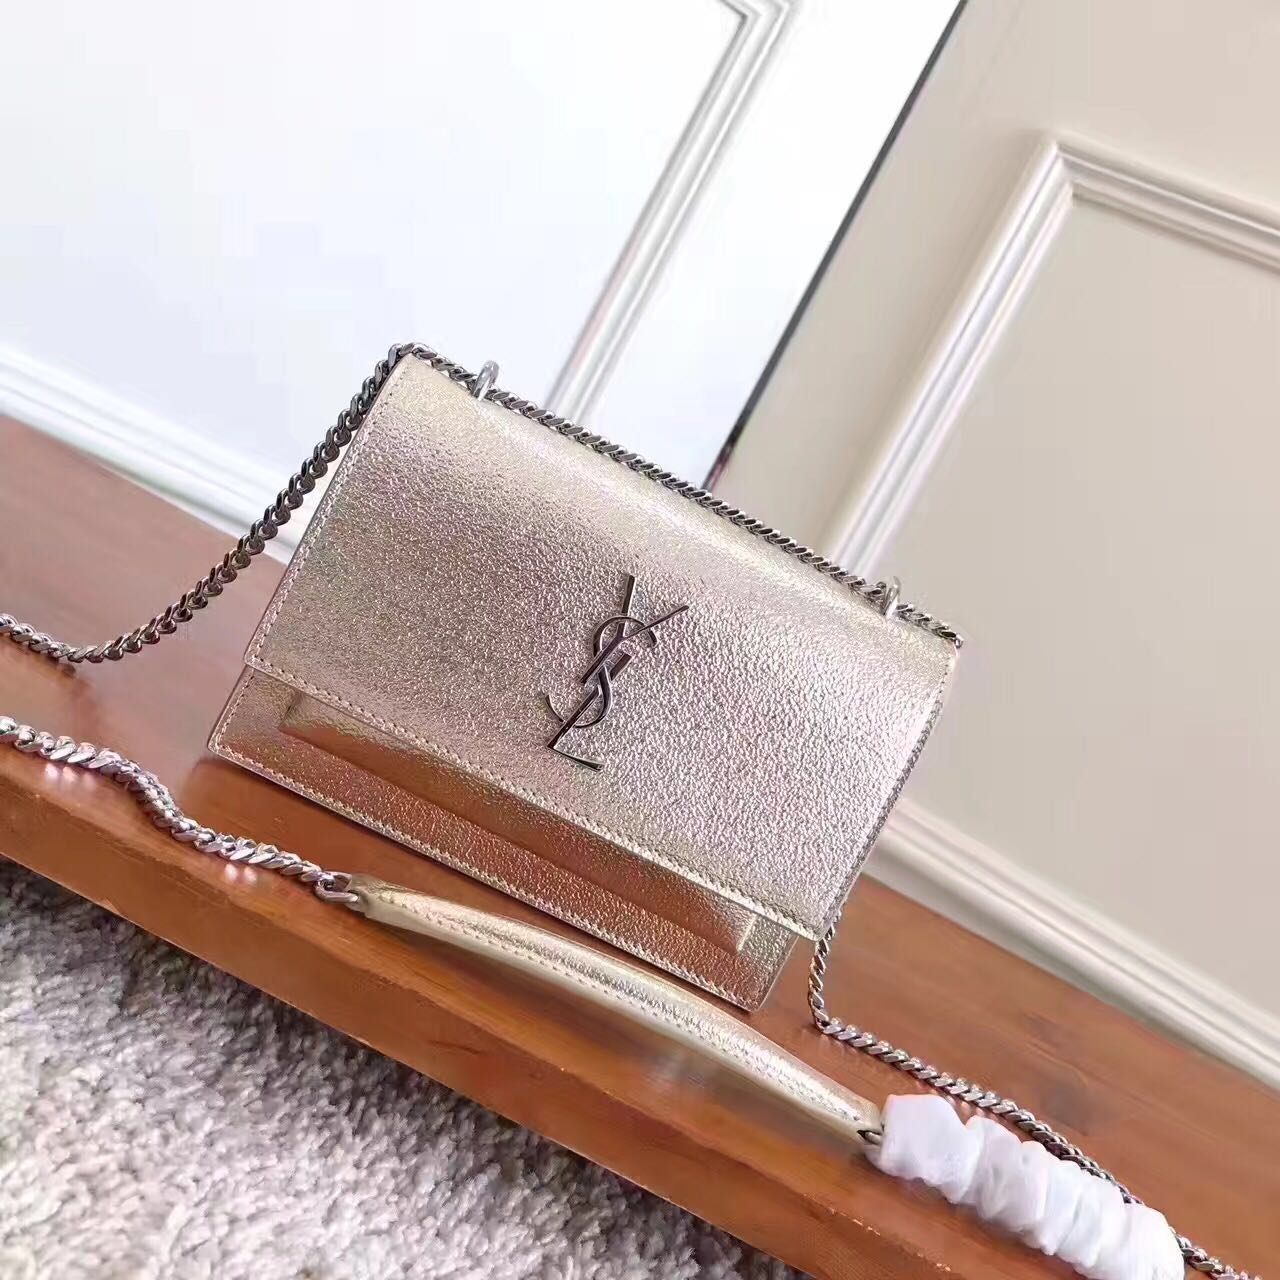 Ysl Replica Handbags-cheap replica Yves Saint Laurent